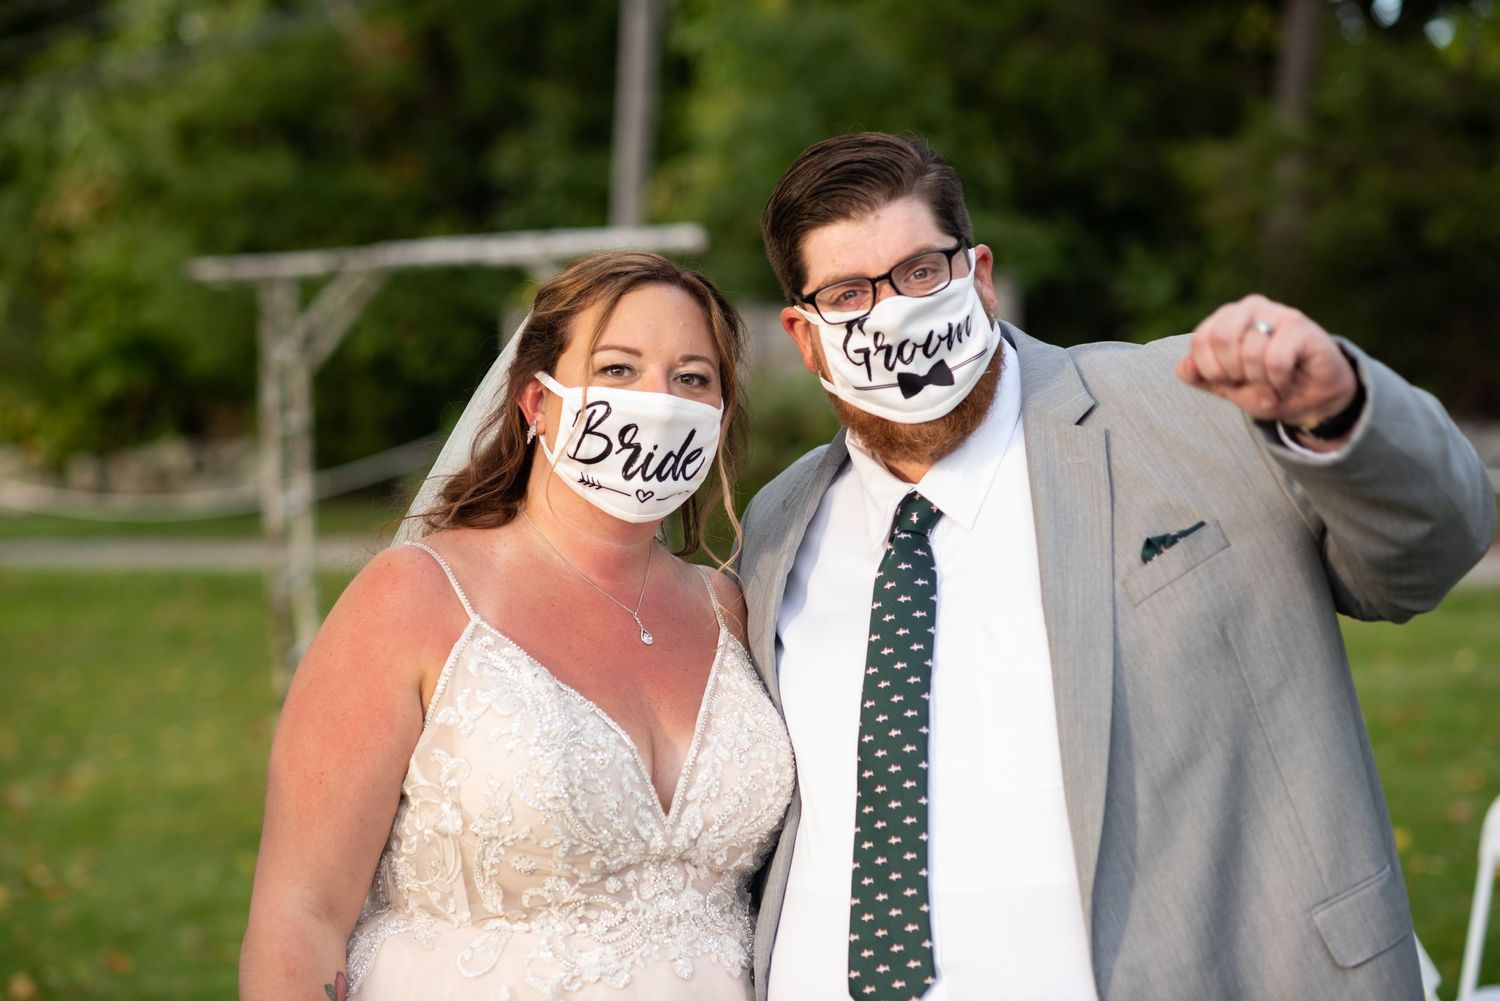 Leah Ramuglia Photography bride and groom masks Covid wedding during quarantine pandemic Woodmans of Essex Room